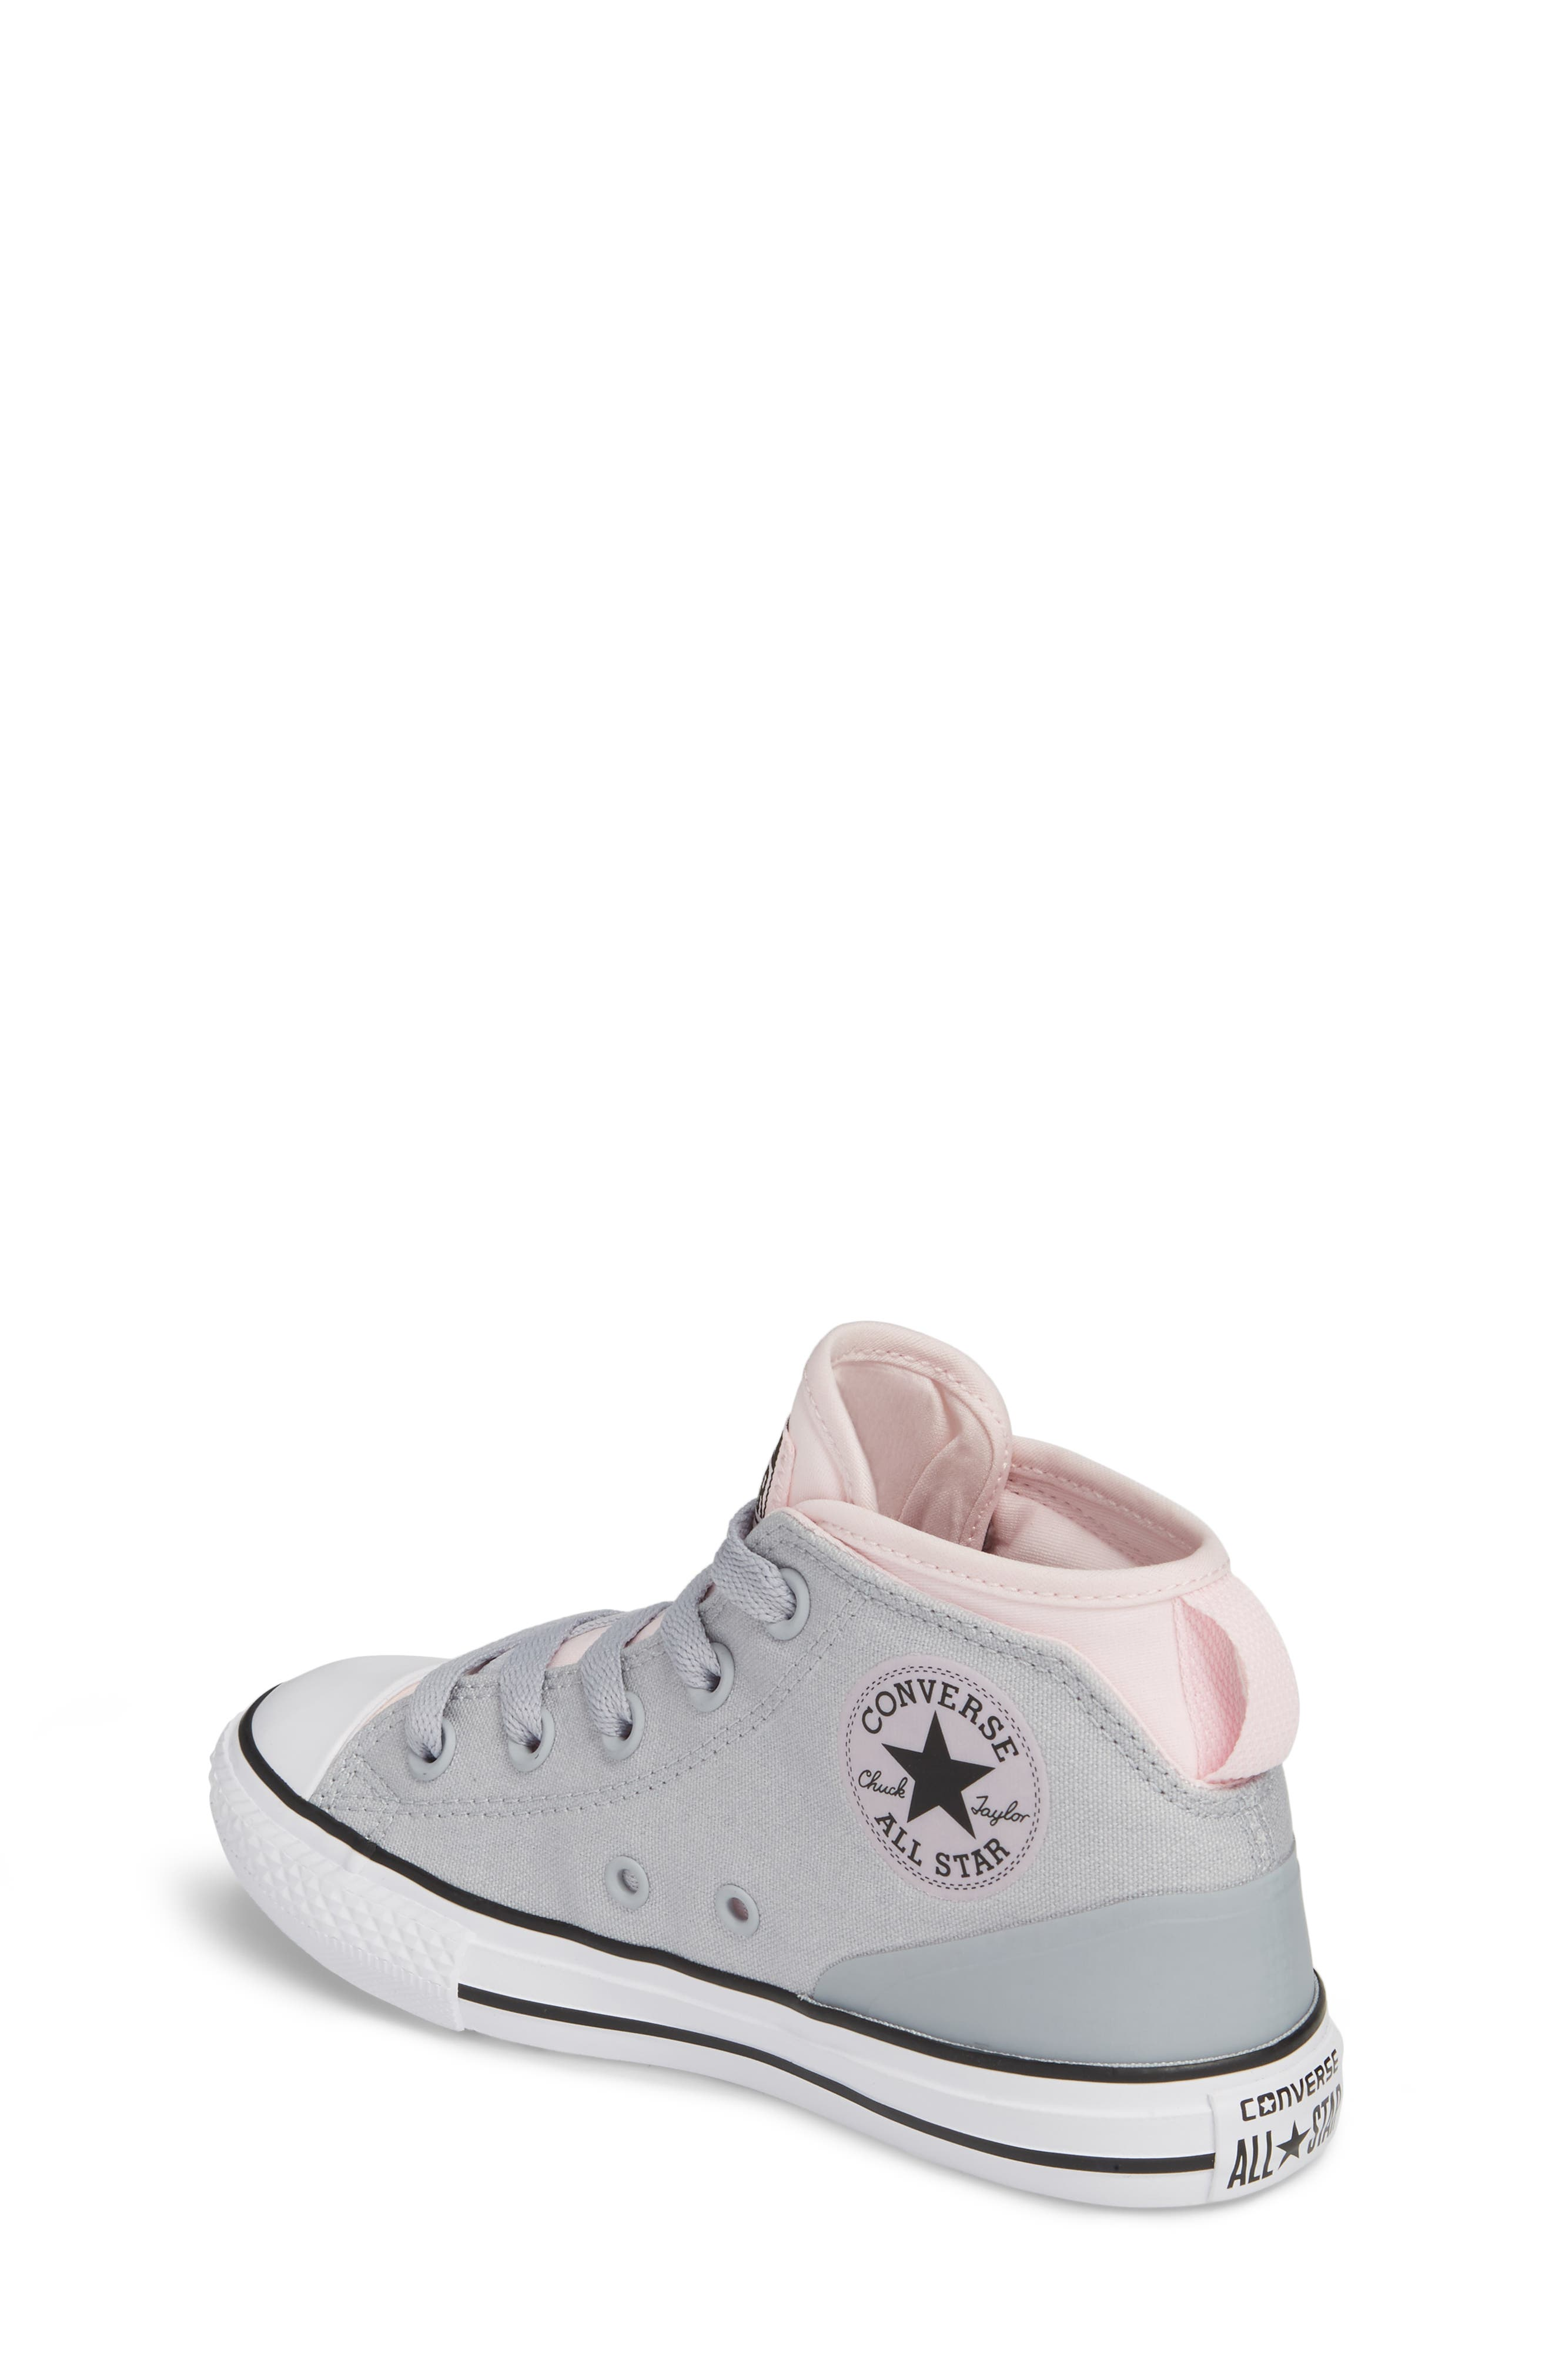 Alternate Image 2  - Converse Chuck Taylor® All Star® Syde Street High Top Sneaker (Baby, Walker, Toddler, Little Kid & Big Kid)